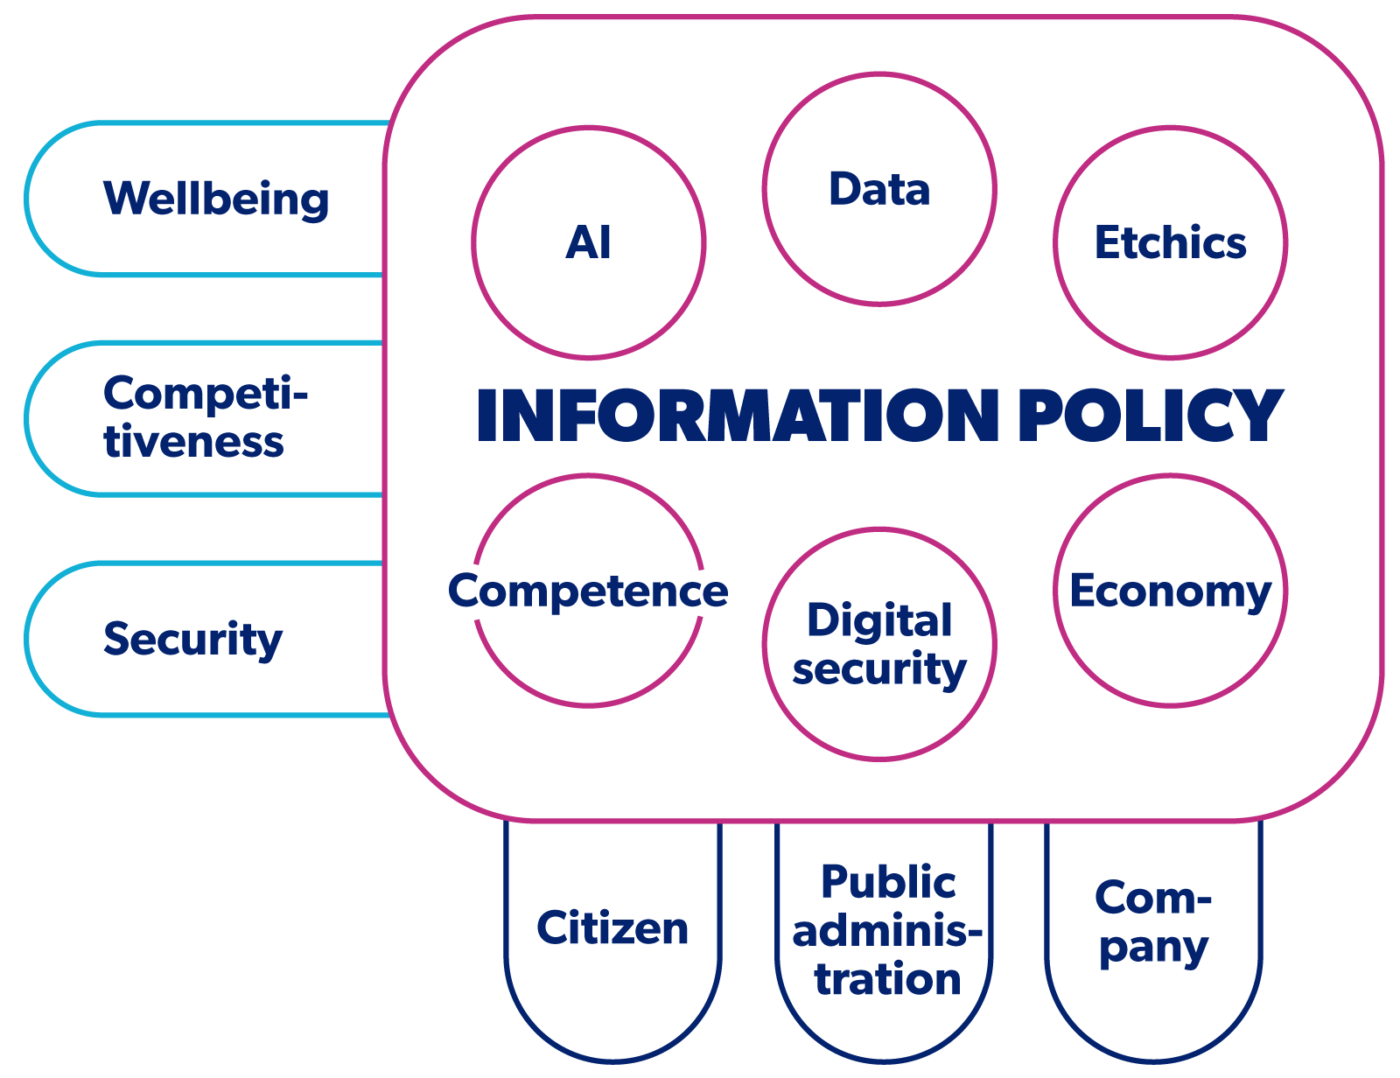 Key dimensions of information policy